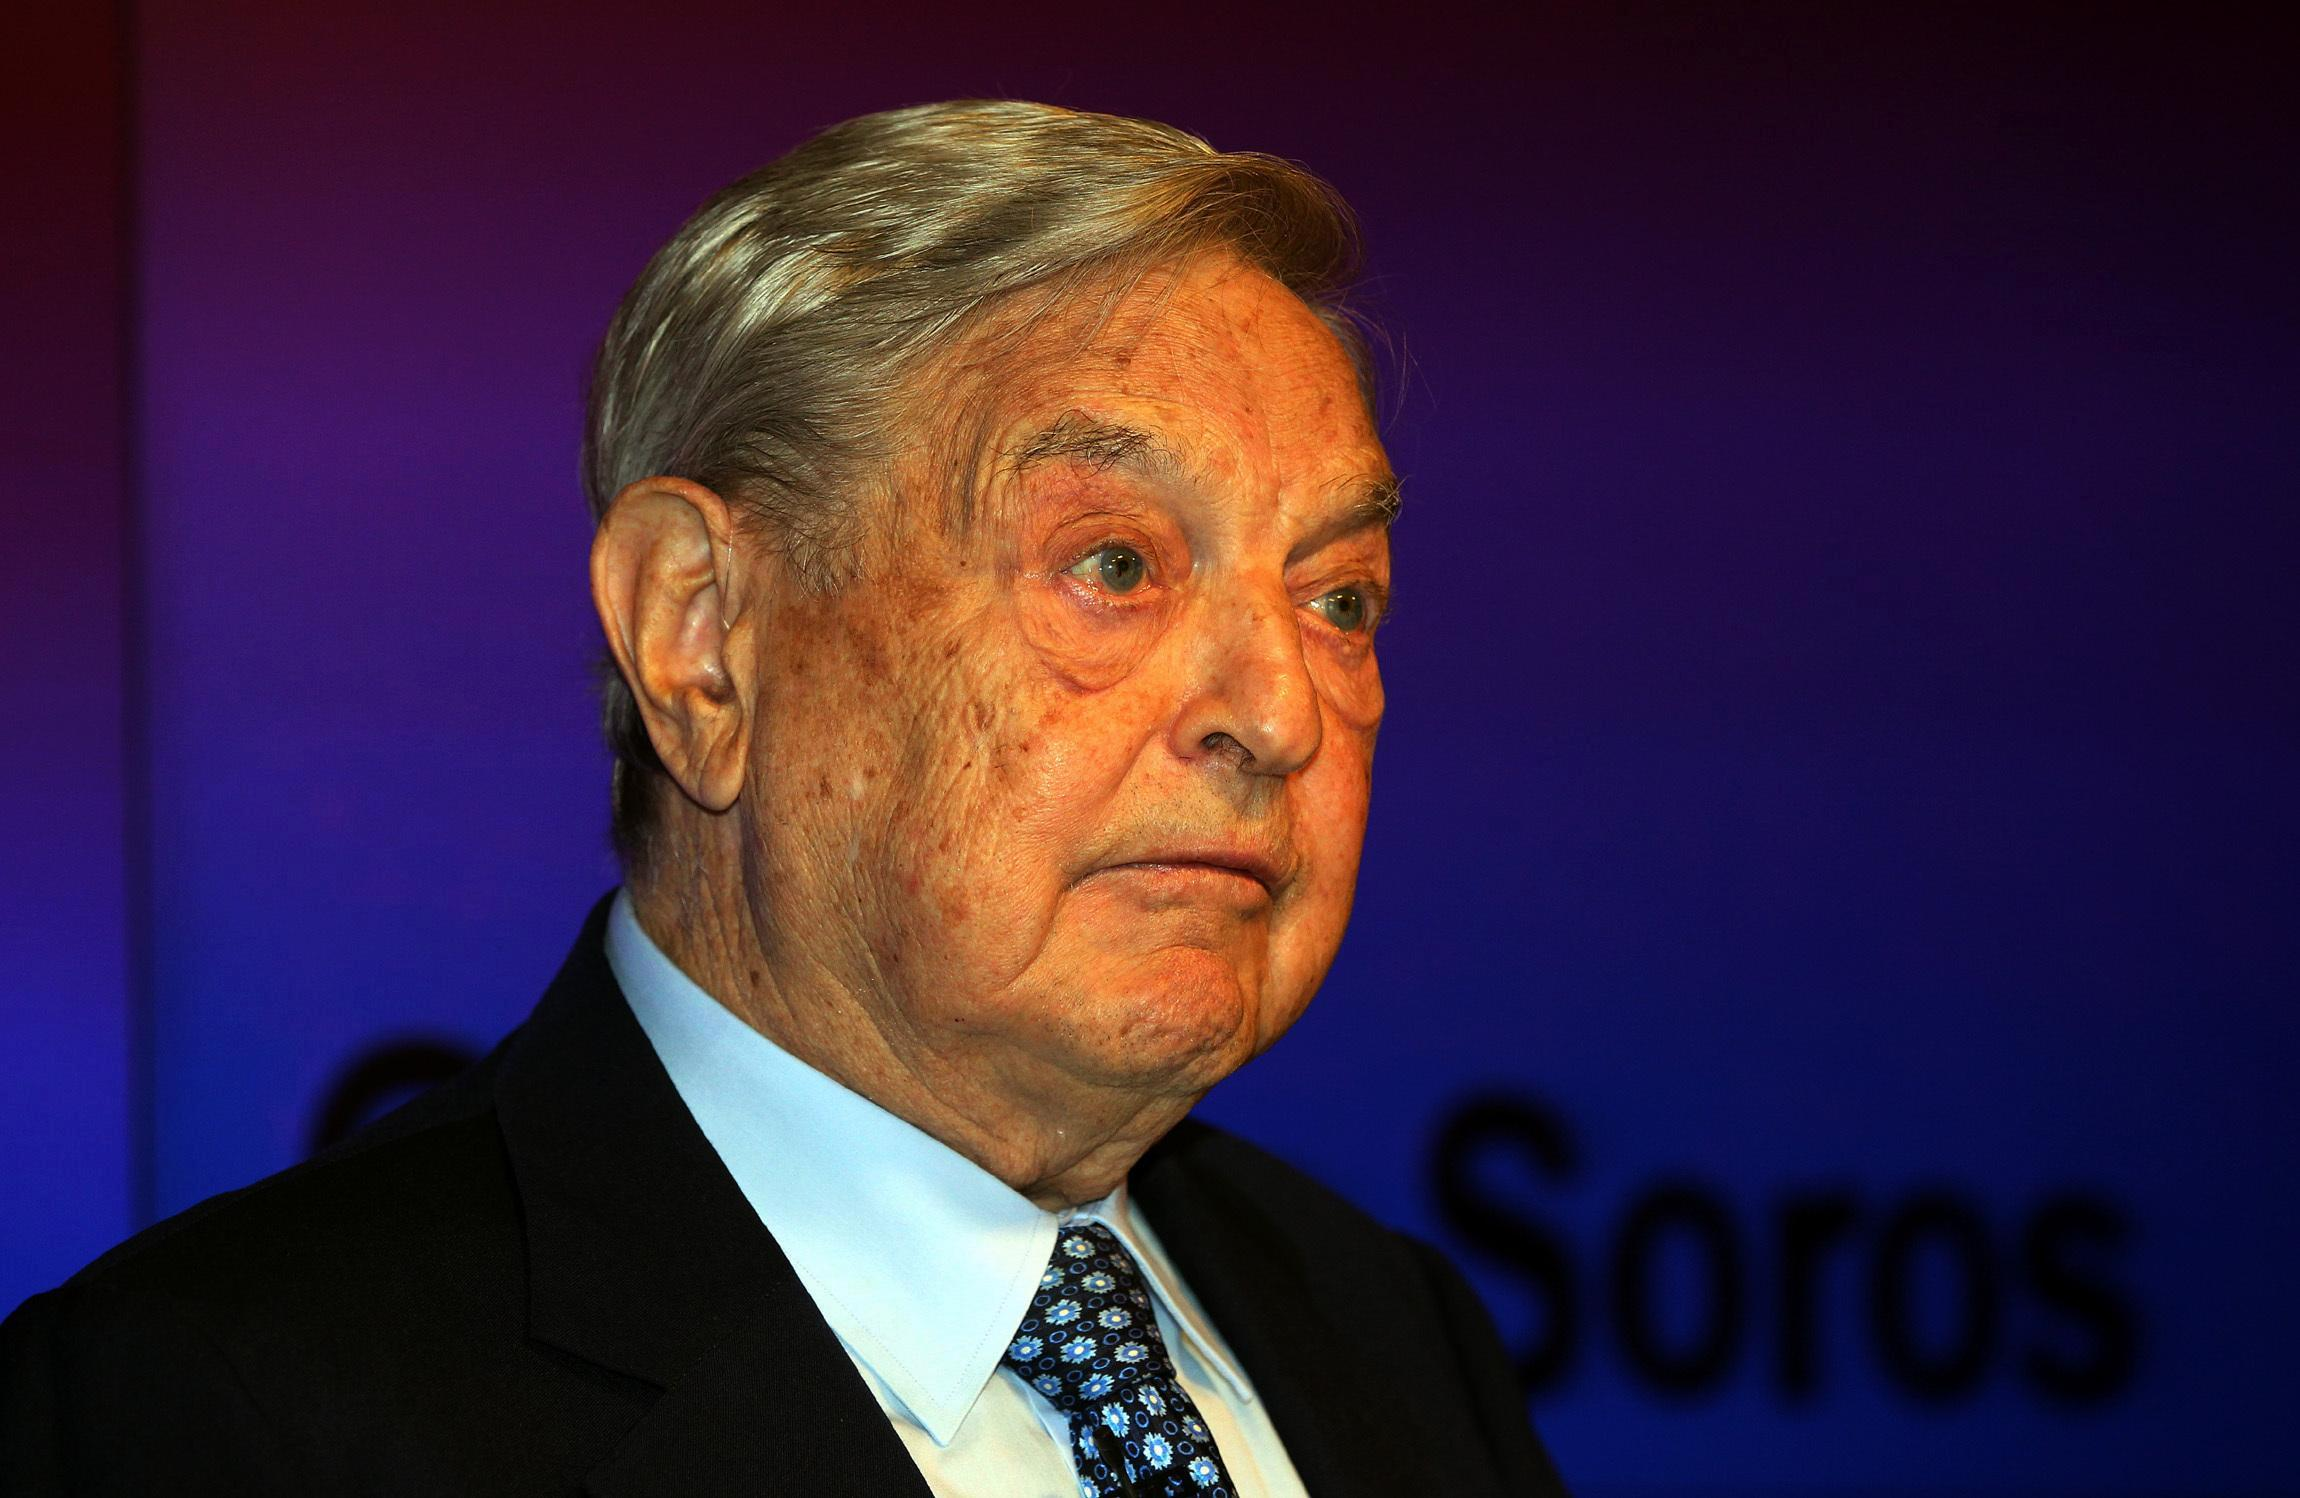 Hungarian billionaire George Soros told to 'stay out of British politics' after admitting £700,000 pro-EU donations